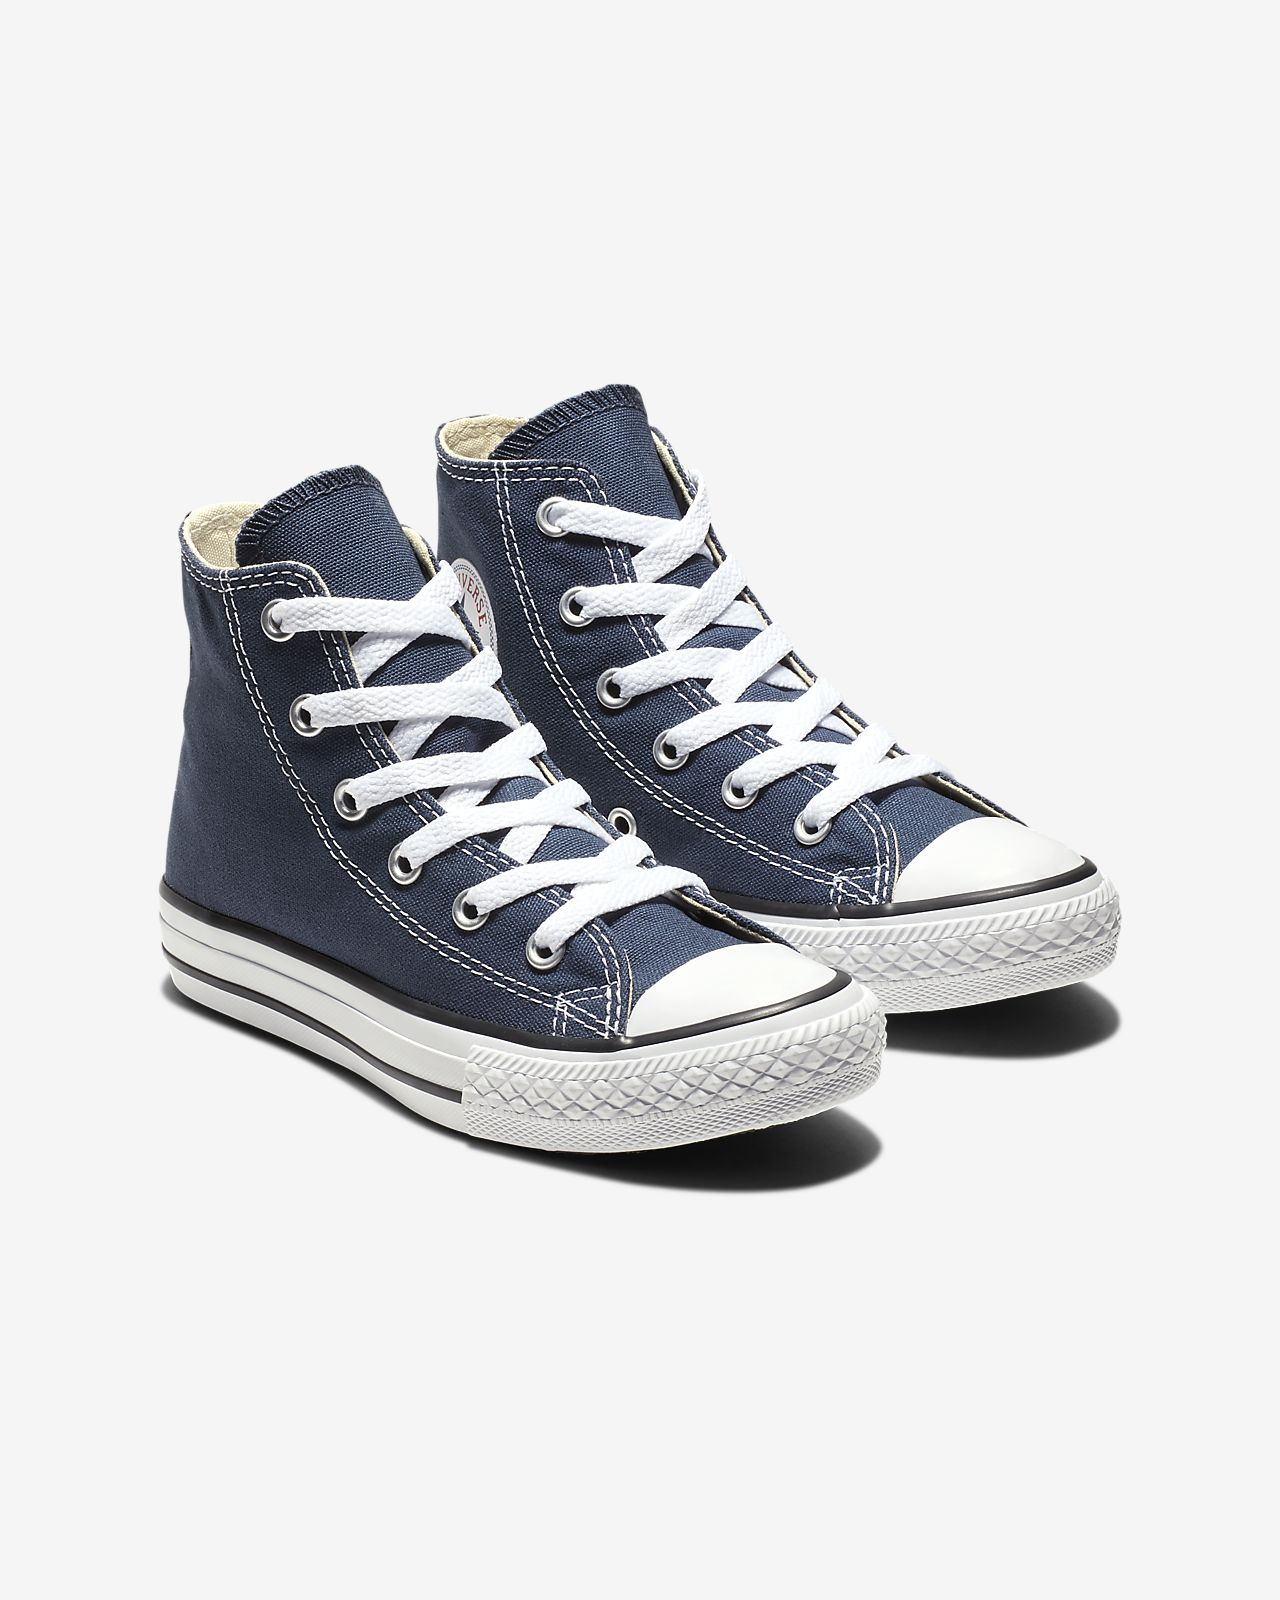 177425ec40ac26 Converse Chuck Taylor All Star High Top (10.5c-3y) Little Kids  Shoe ...